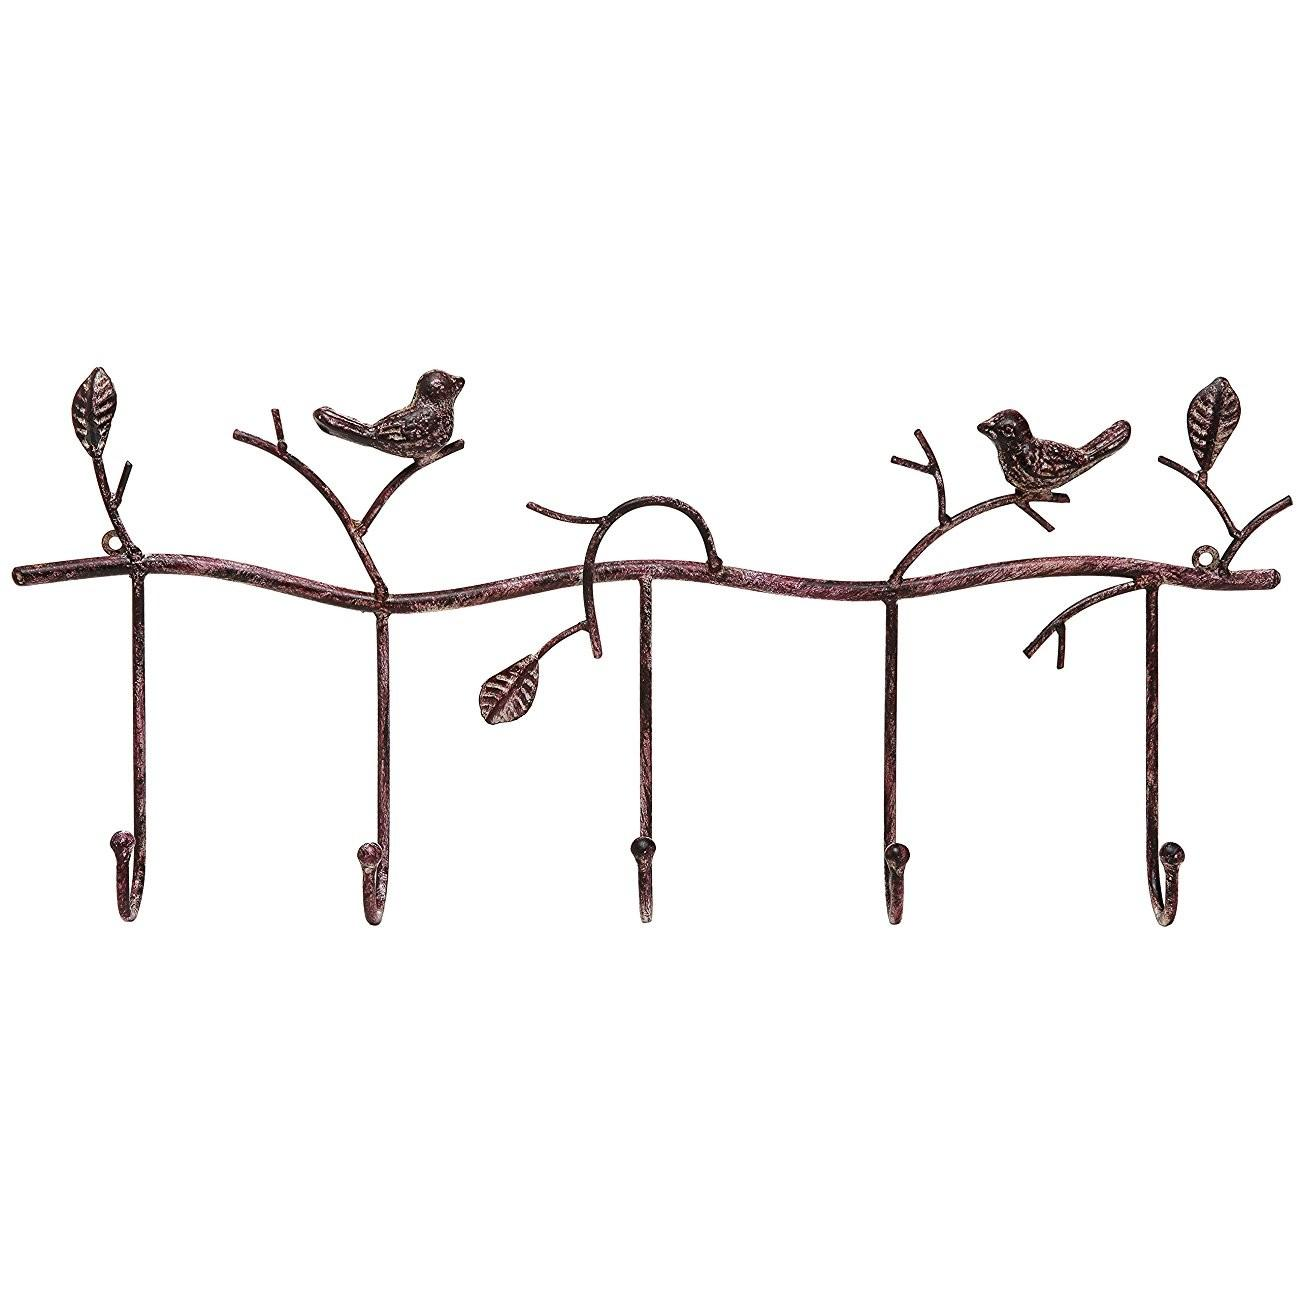 Decorative Rustic Tree Branch Birds Wall Mounted Metal